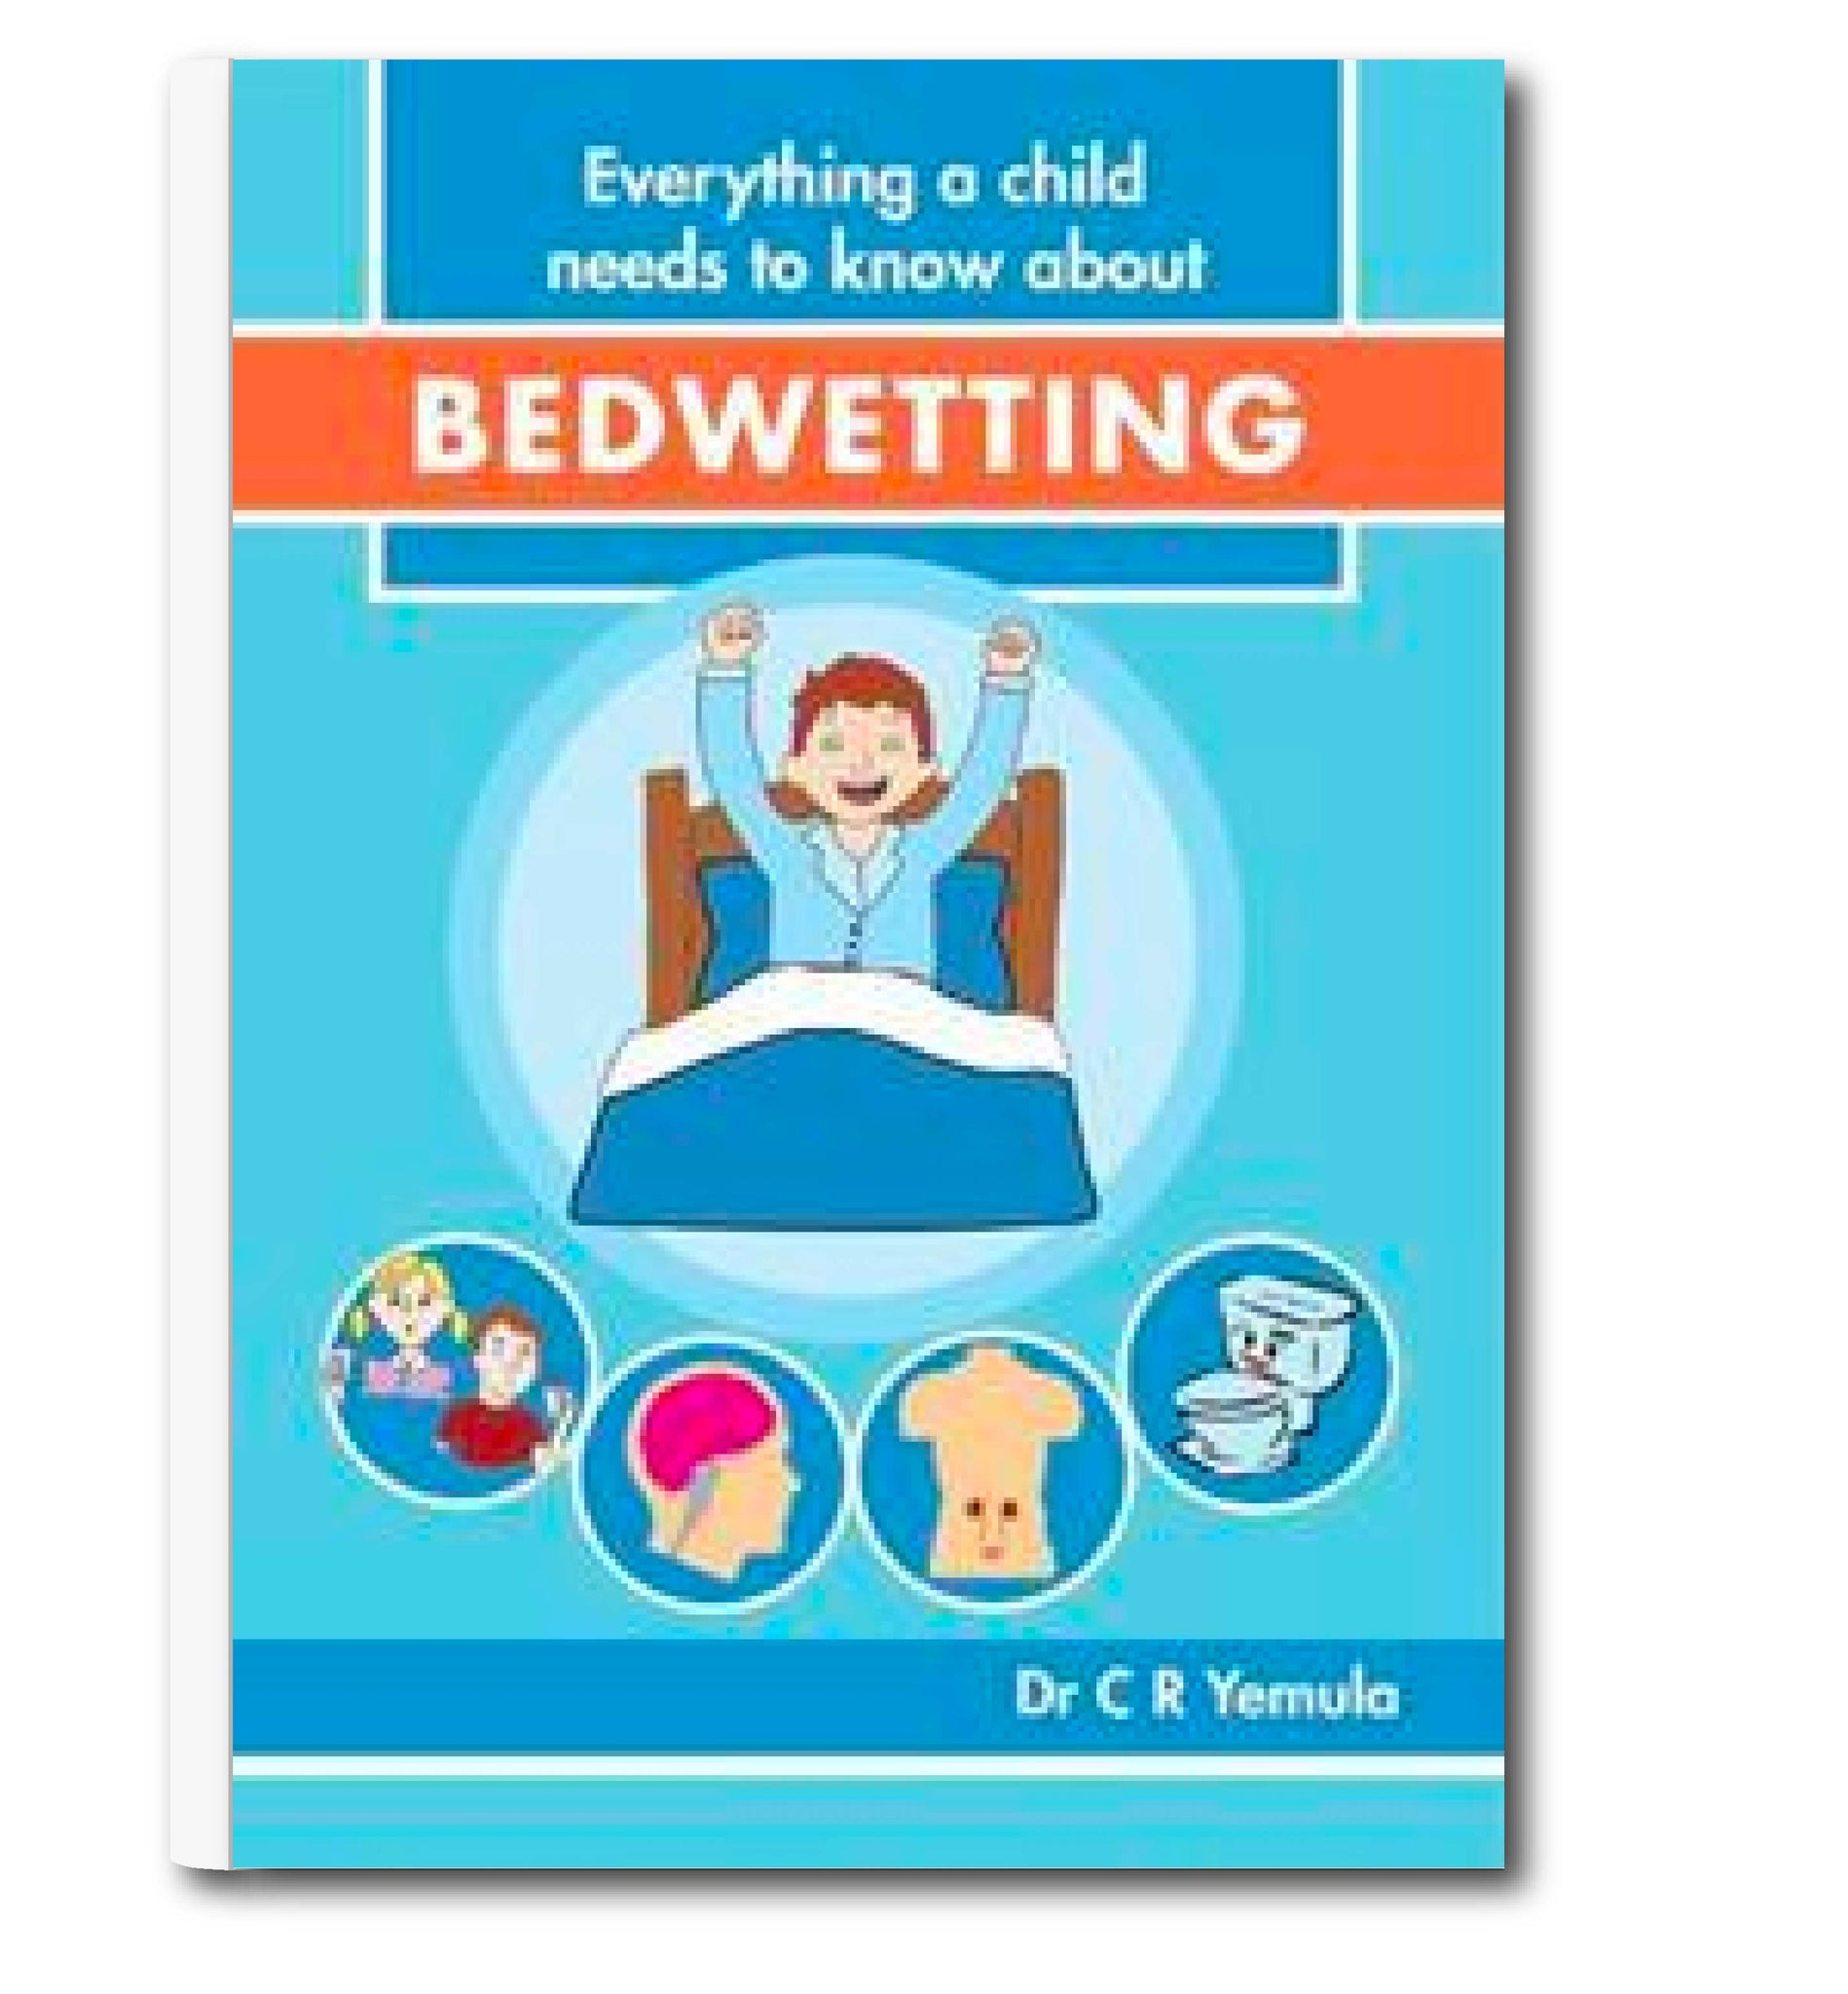 Everything a child needs to know about bedwetting